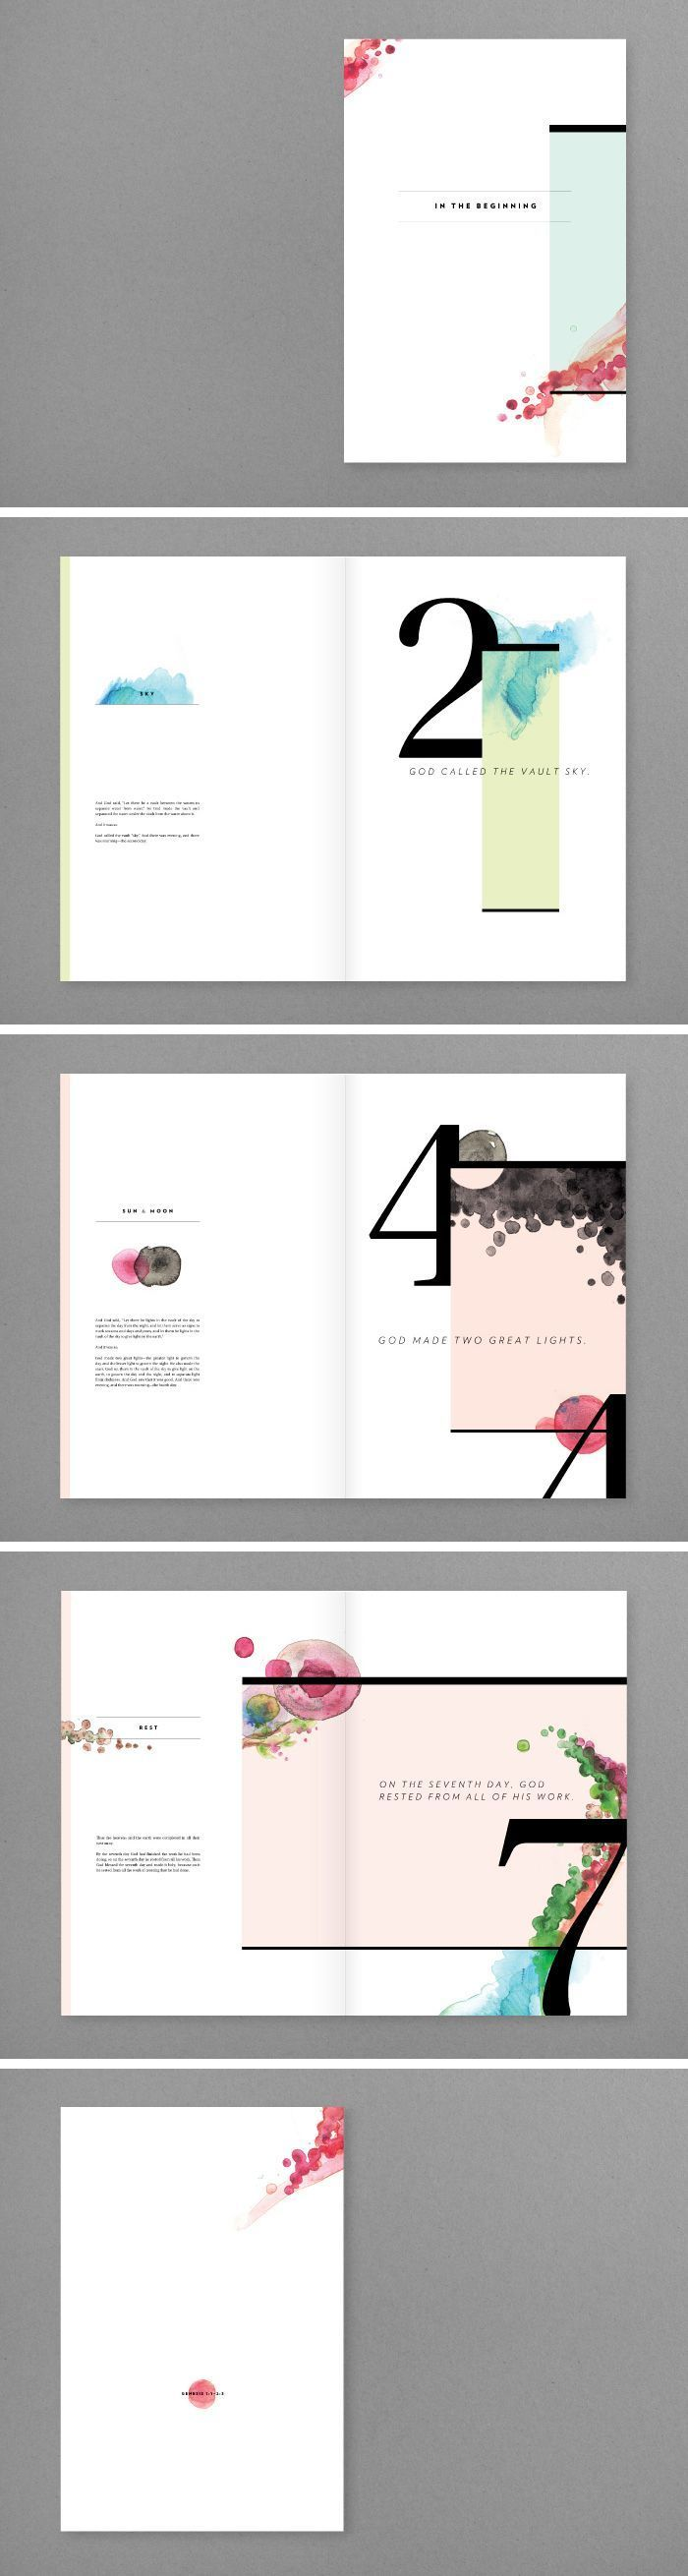 The combination of water color and typography is elegant and simple. The large page numbers stand out to the reader and create a unique spread.